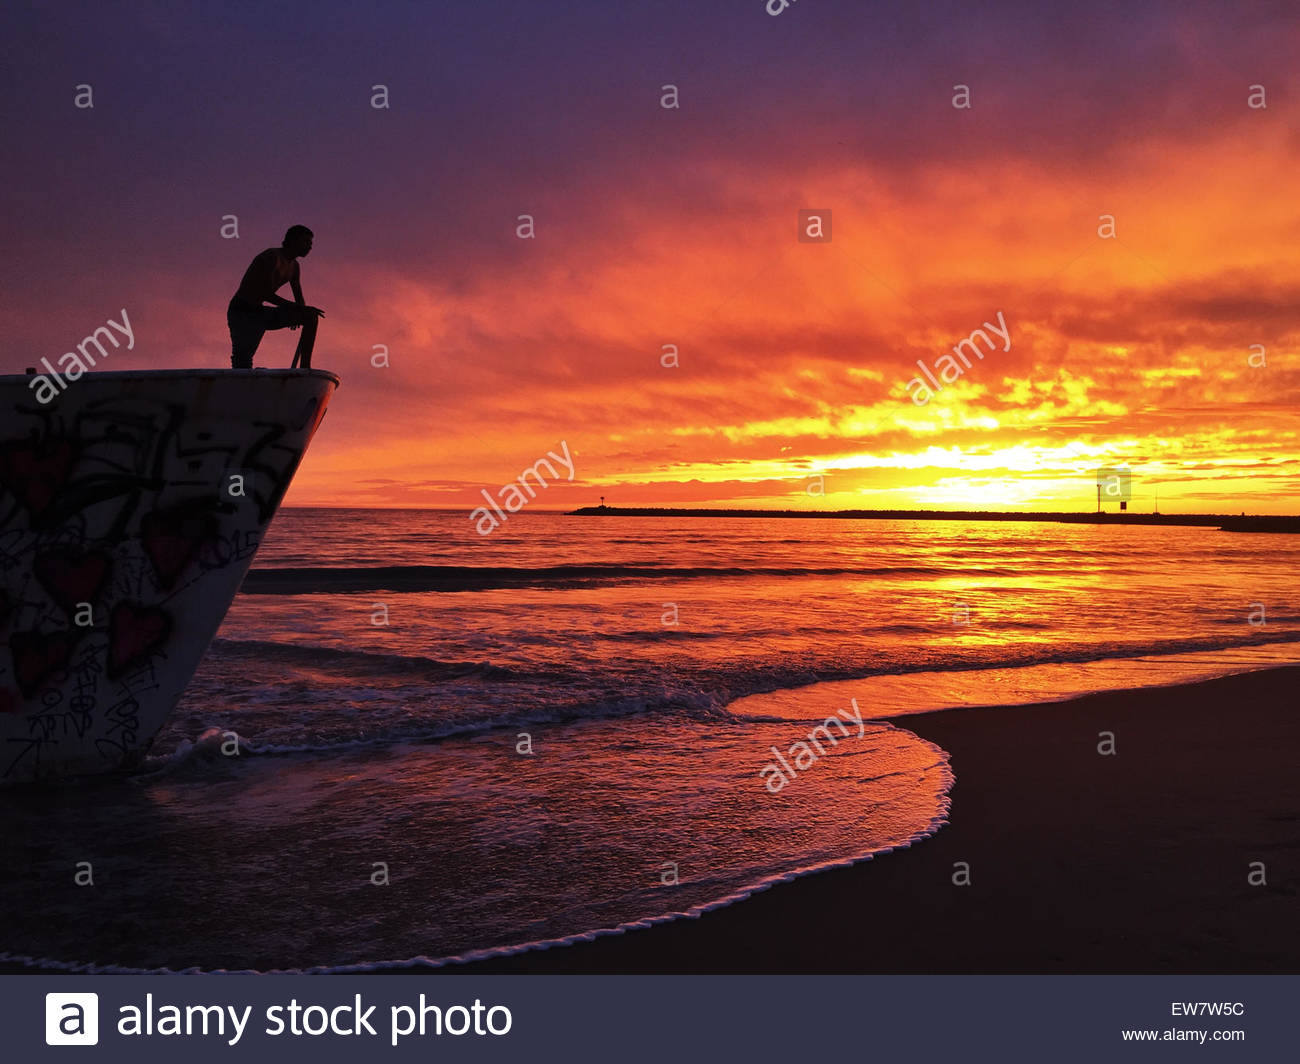 Silhouette of a man standing on a boat wreck - Stock Image